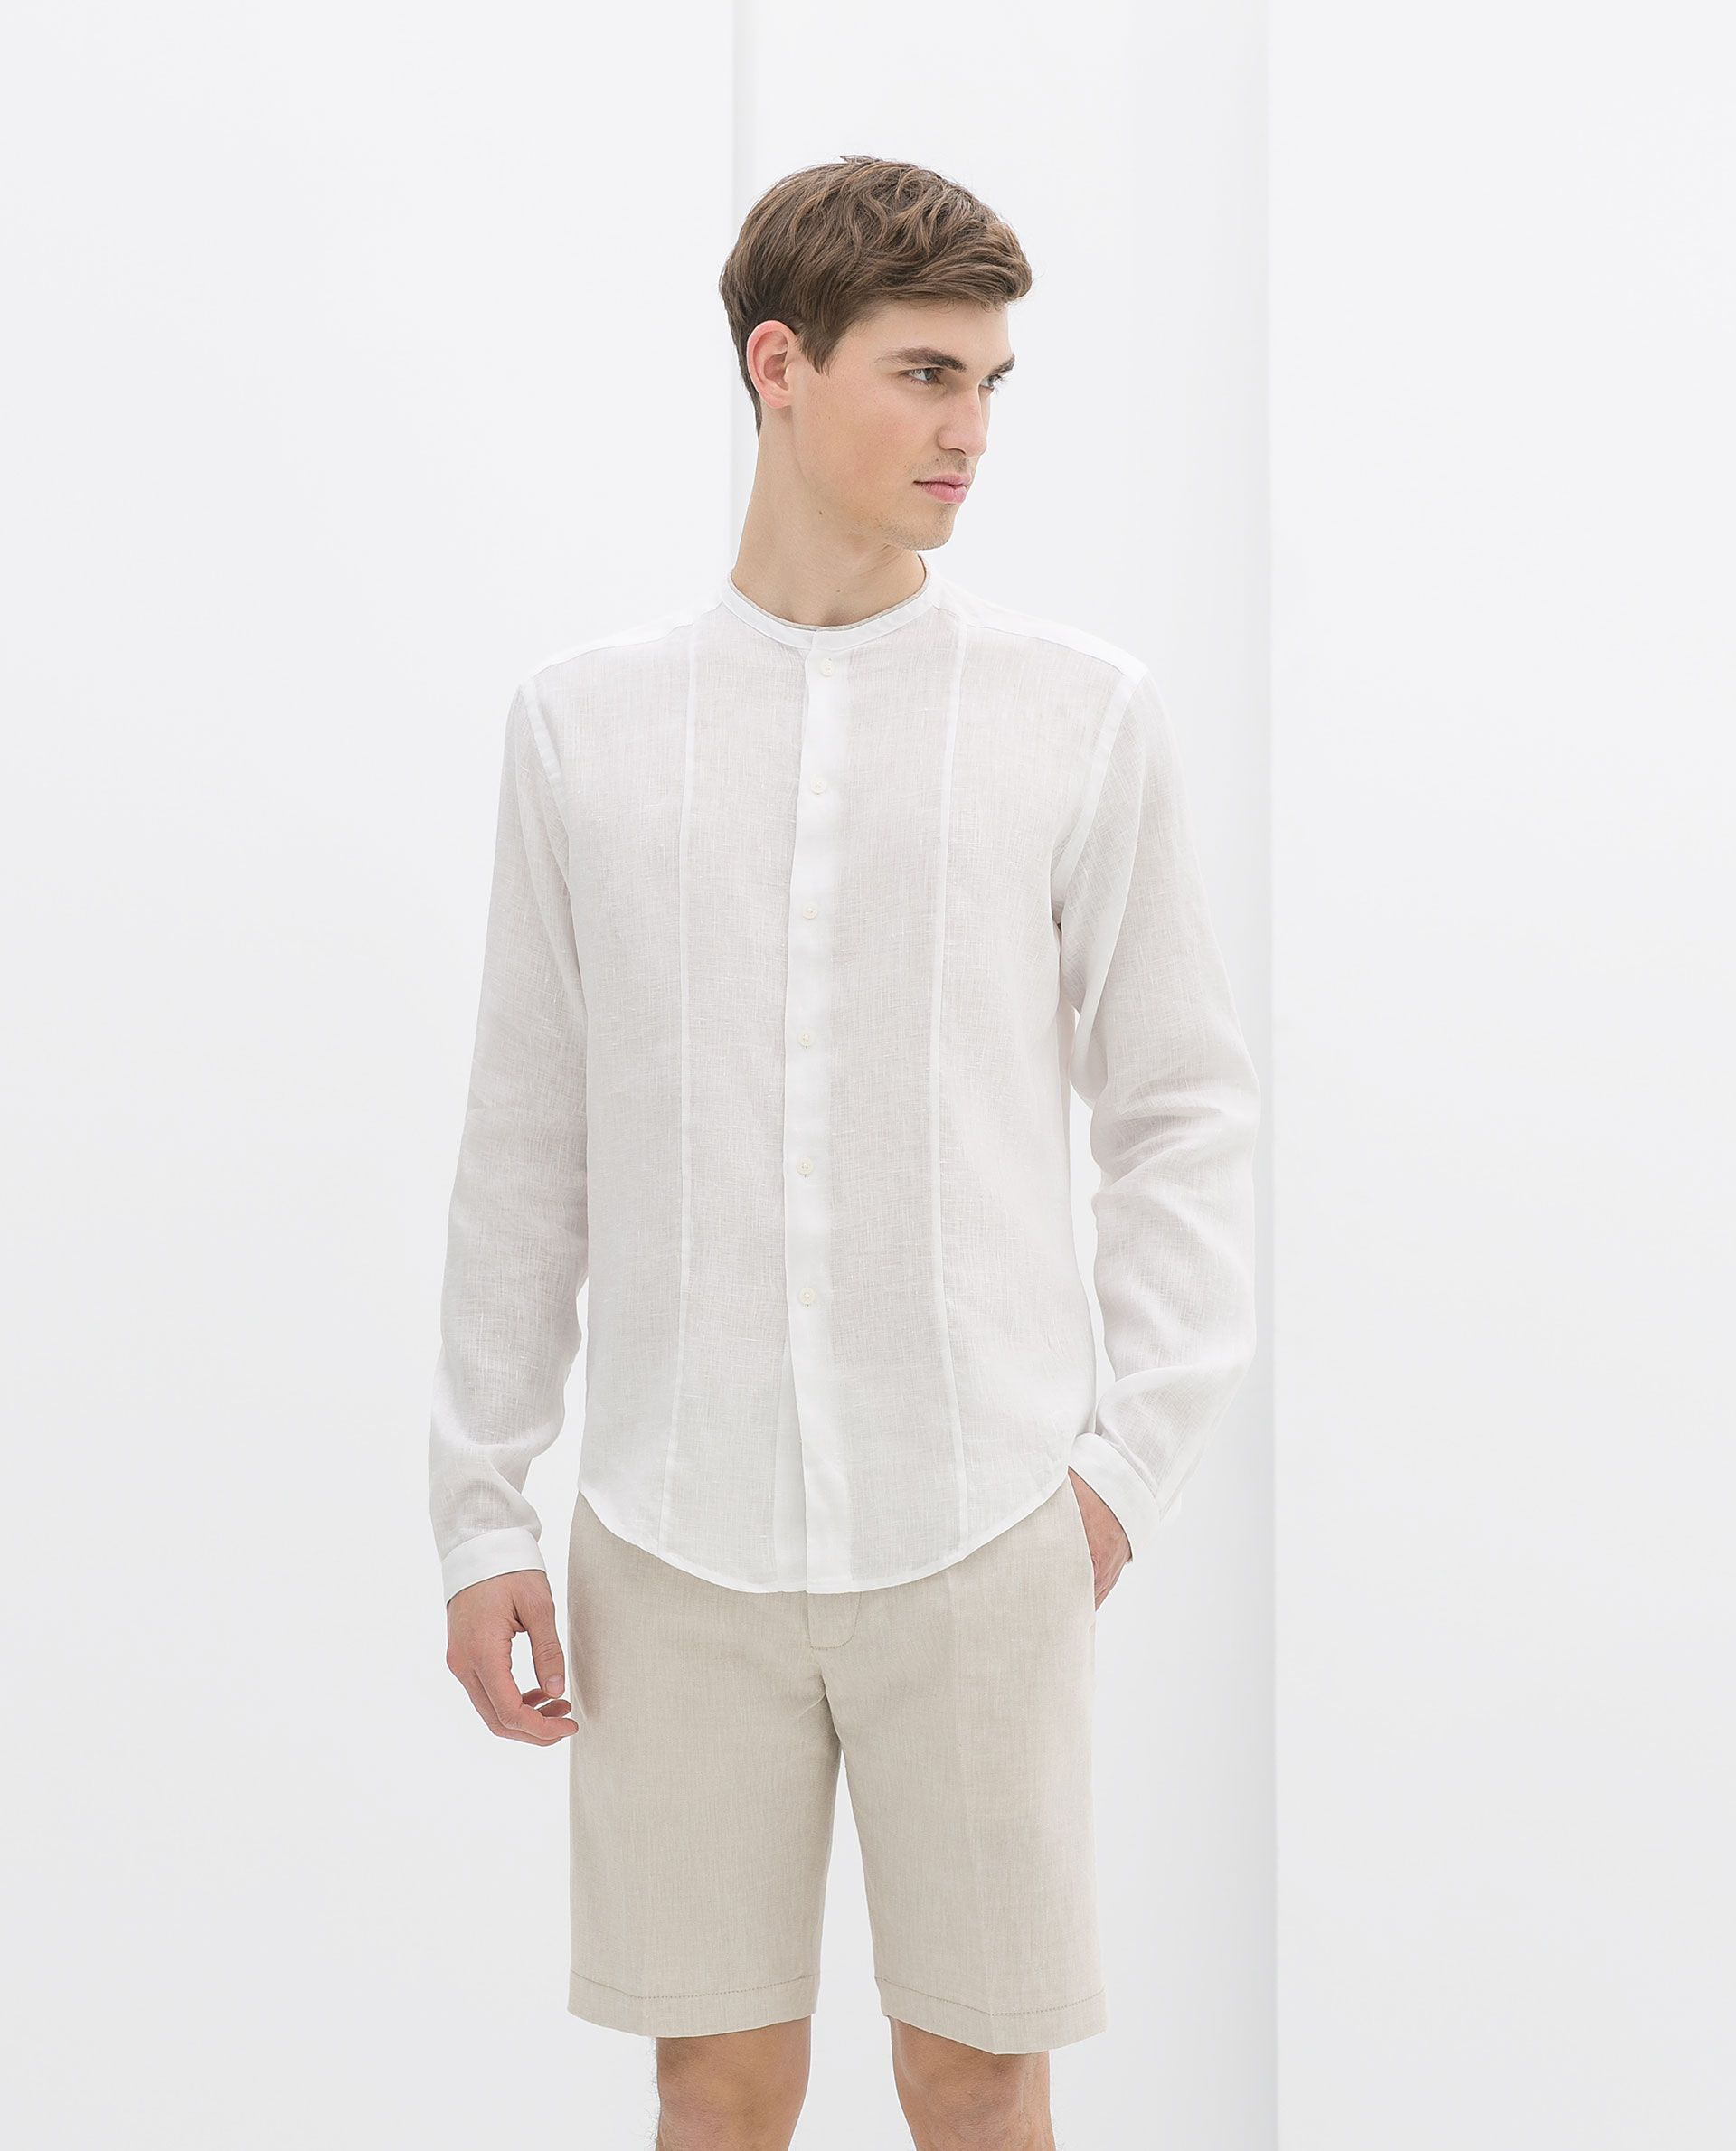 Linen collarless shirt (Zara-SS 2014) | Carrot | Pinterest | Men's ...